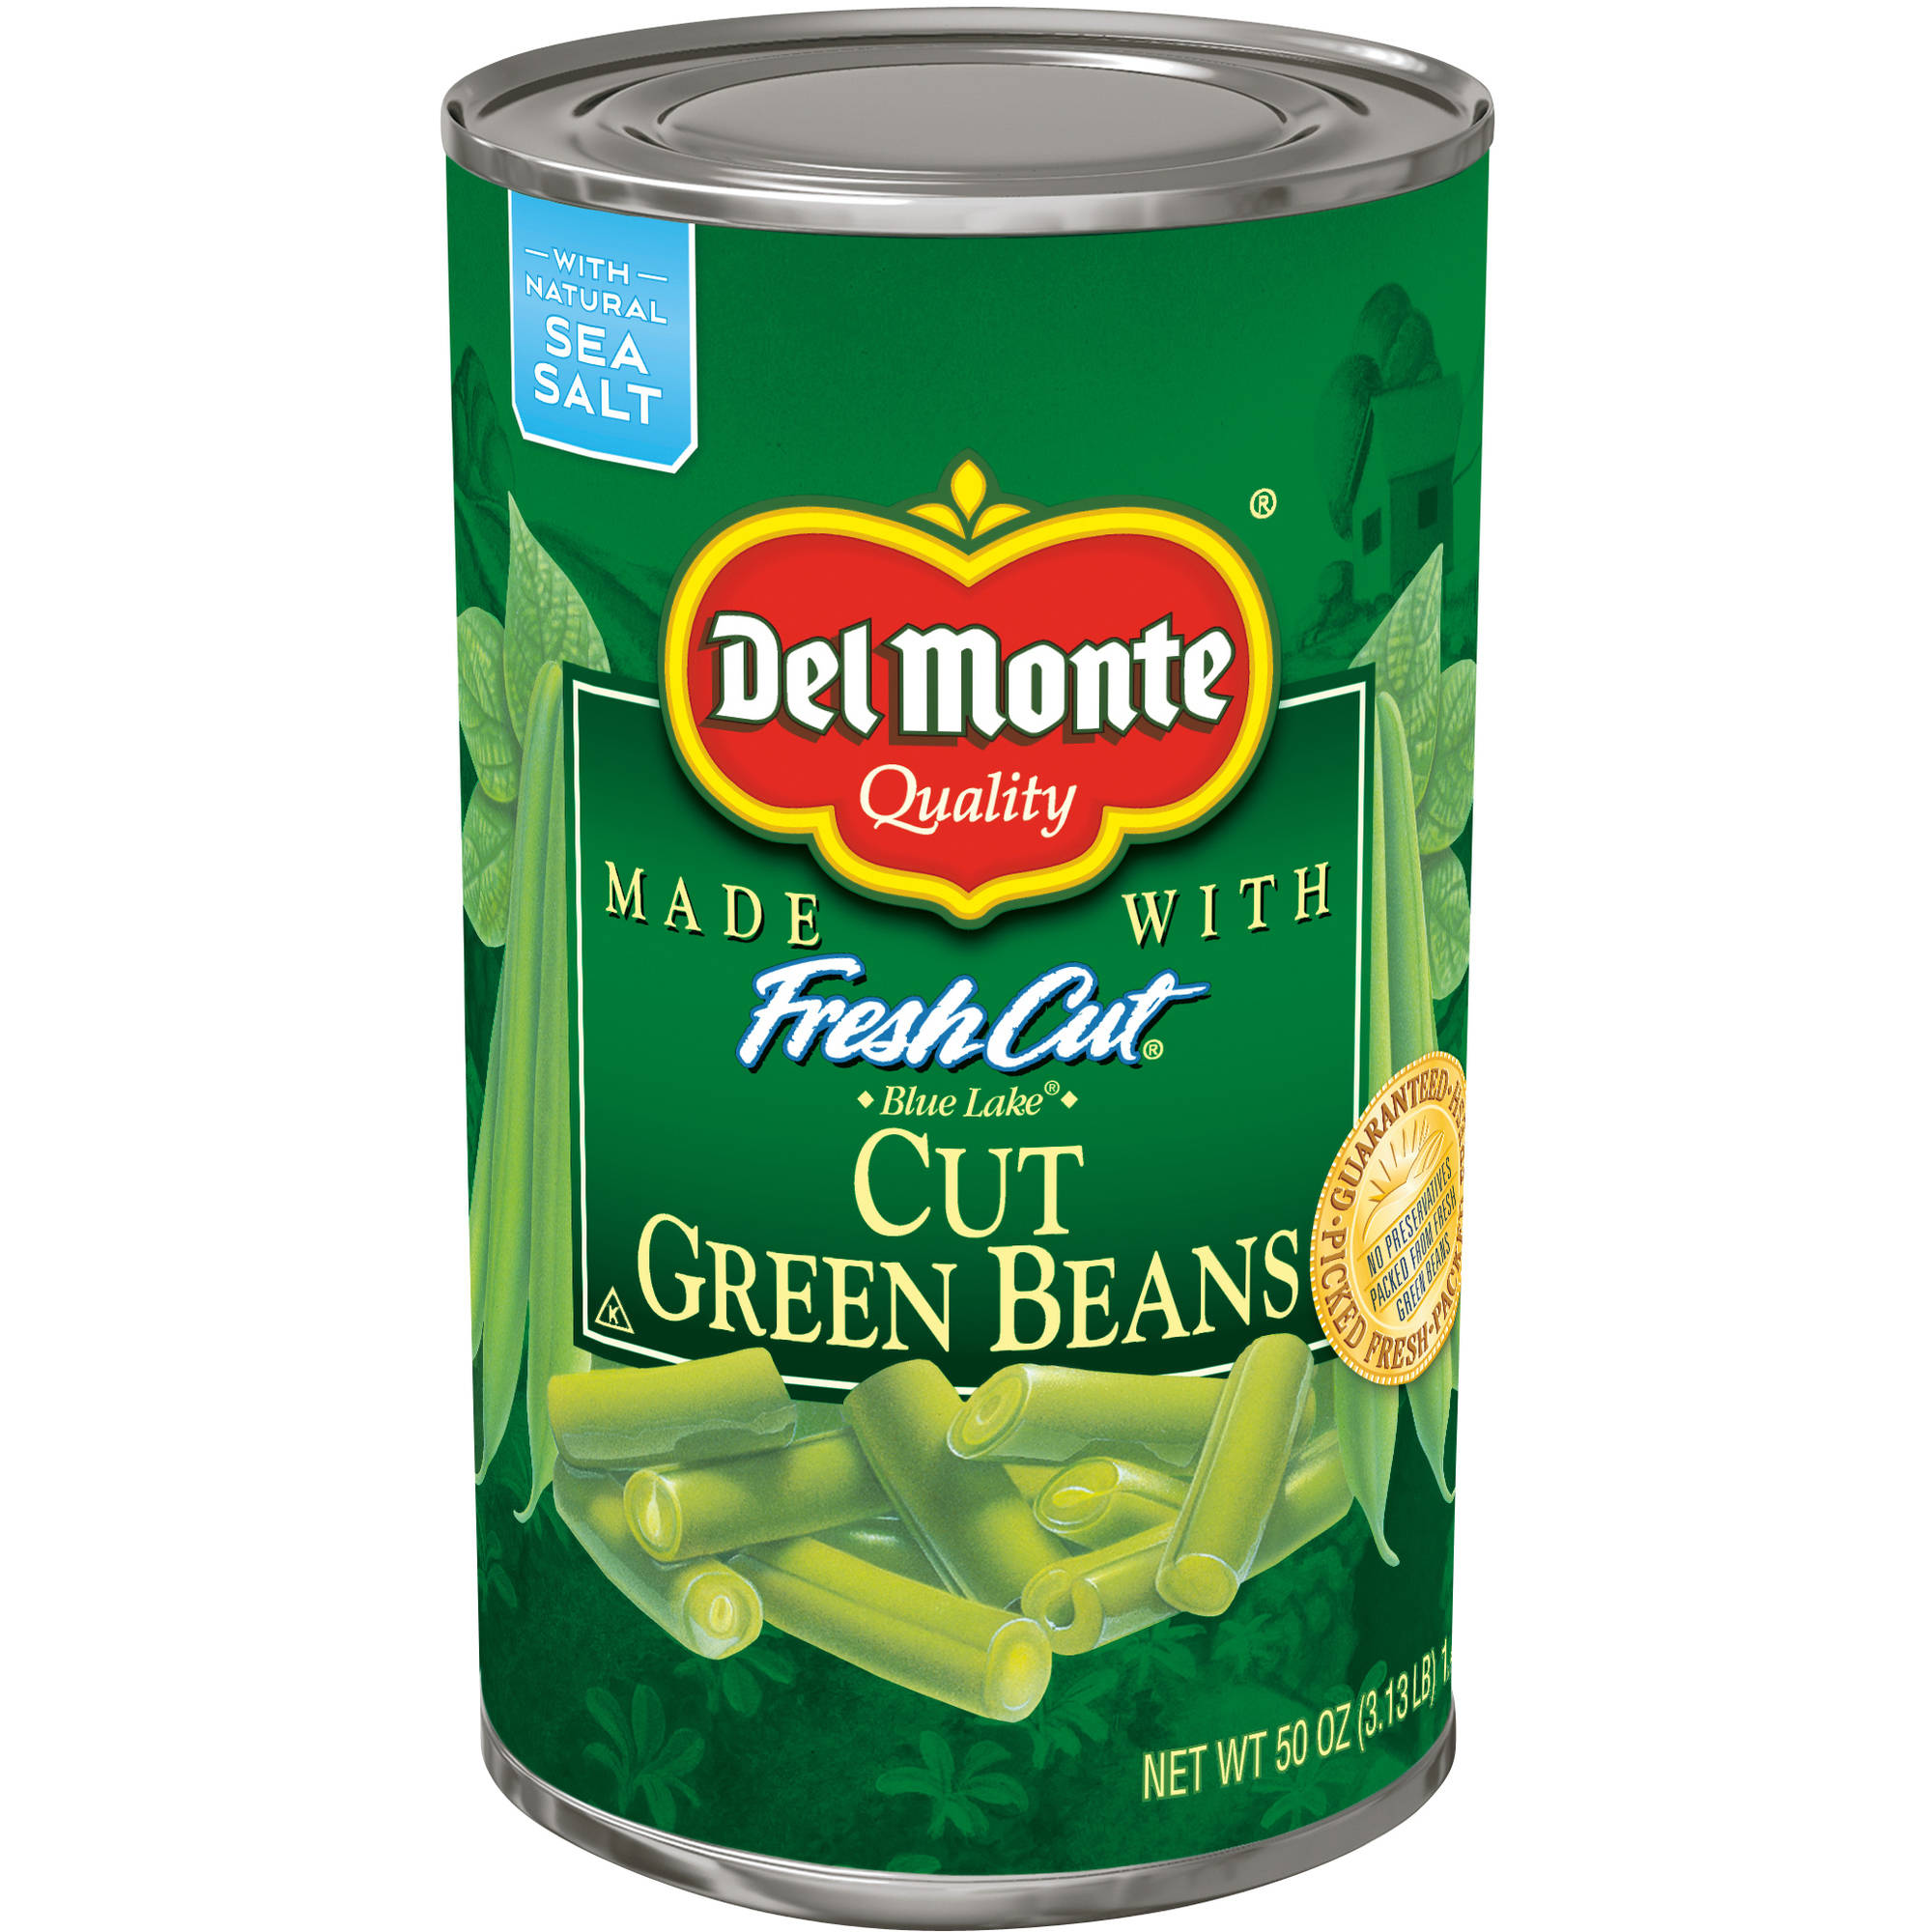 Del Monte FreshCut Blue Lake Cut Green Beans, 50 oz